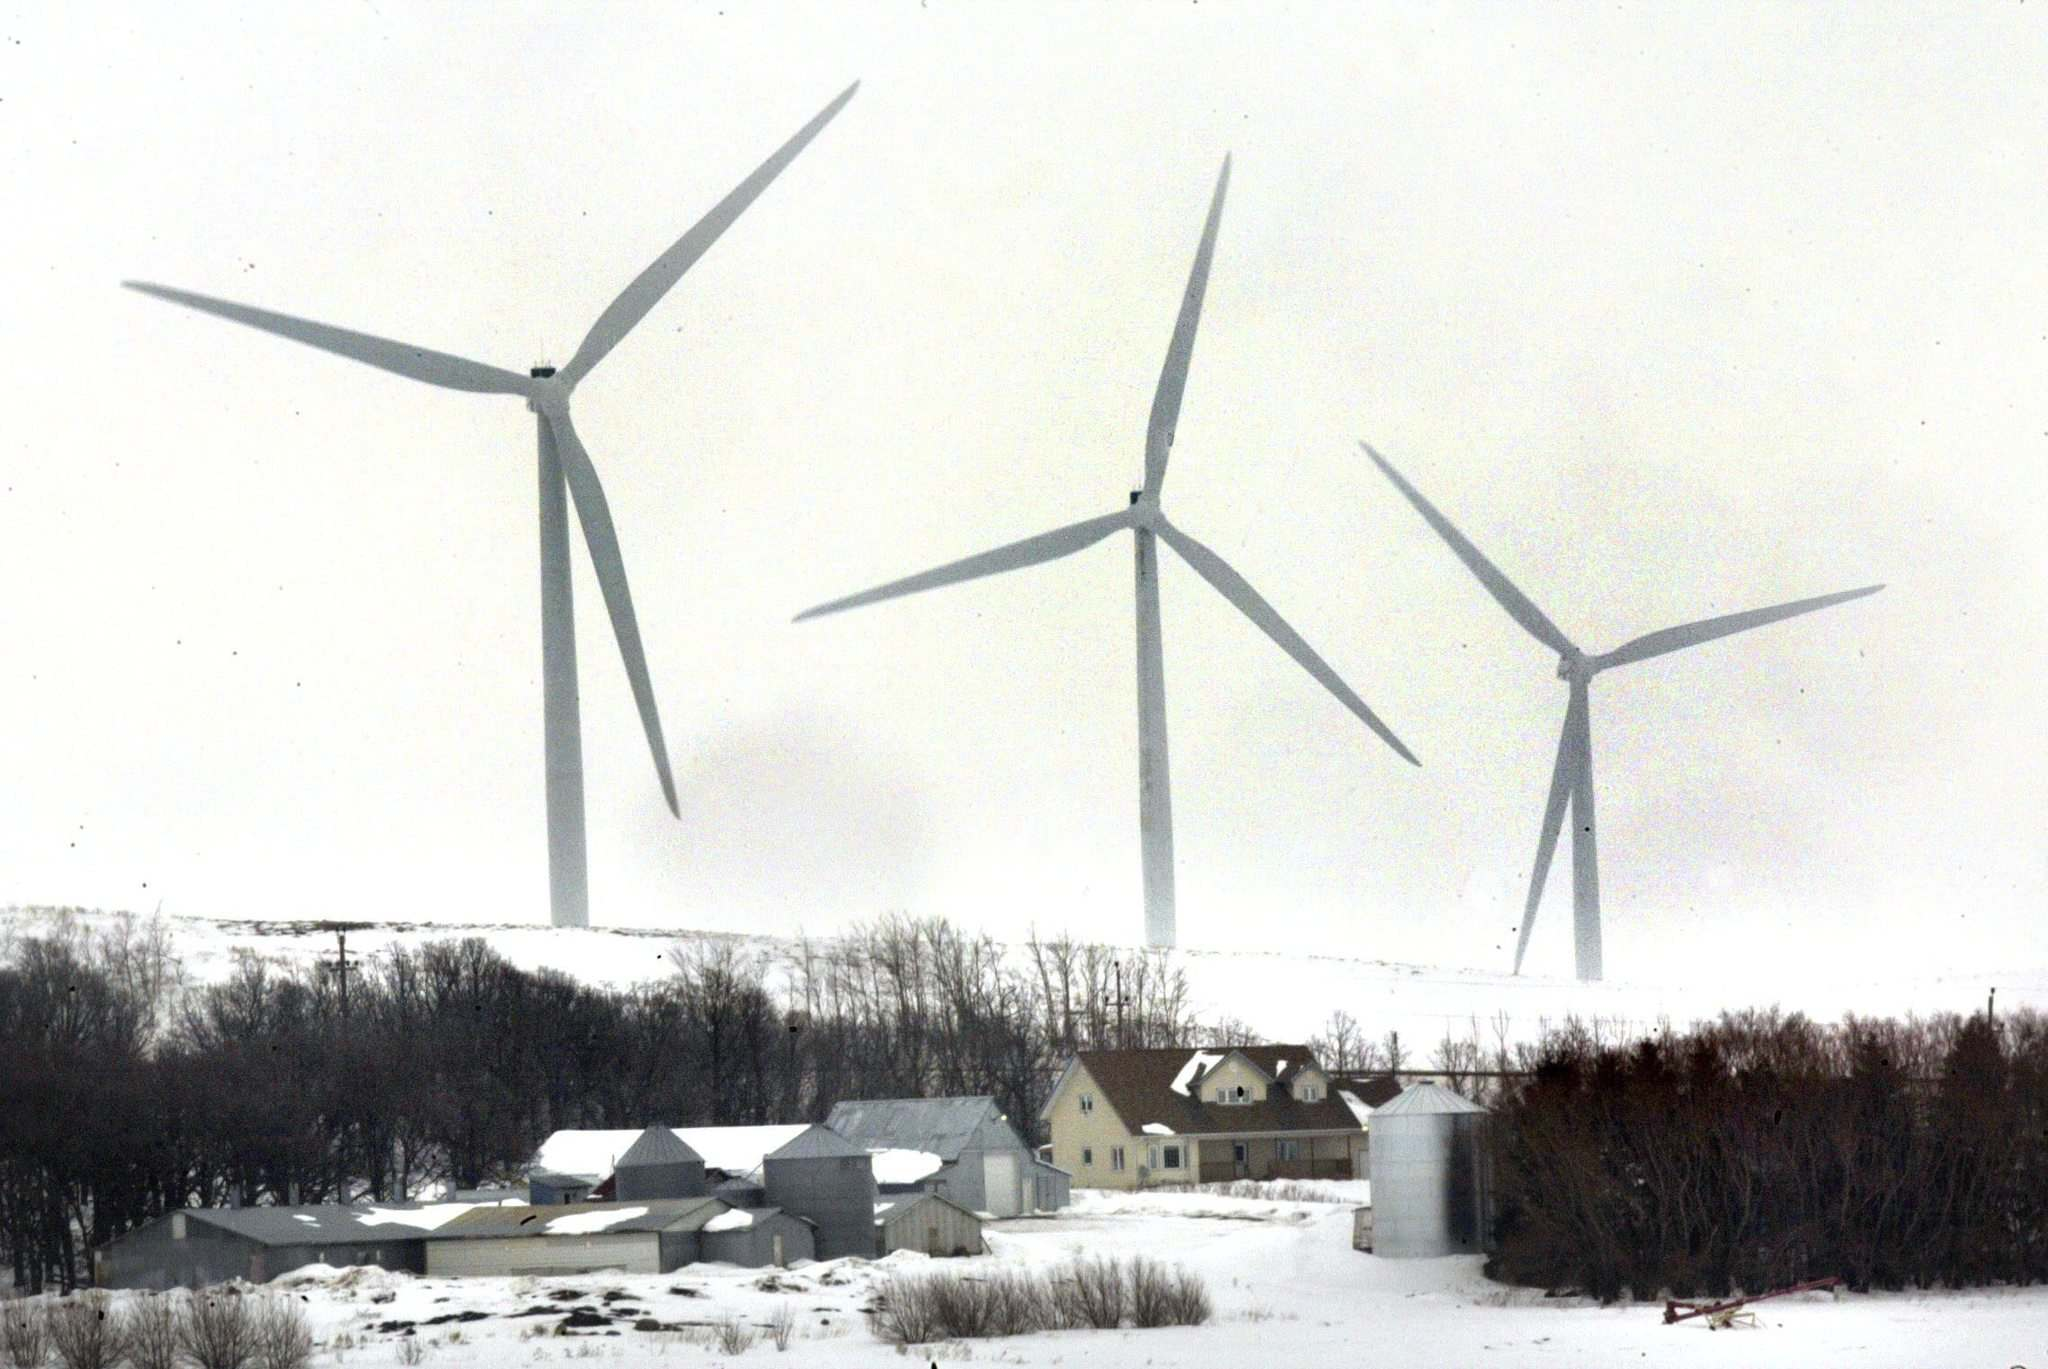 PHIL HOSSACK / WINNIPEG FREE PRESS FILES</p><p>According to a briefing note released by the Progressive Conservative campaign, the net loss of Manitoba's three wind-farm projects, including St. Leon (above), totals $327 million so far.</p></p>